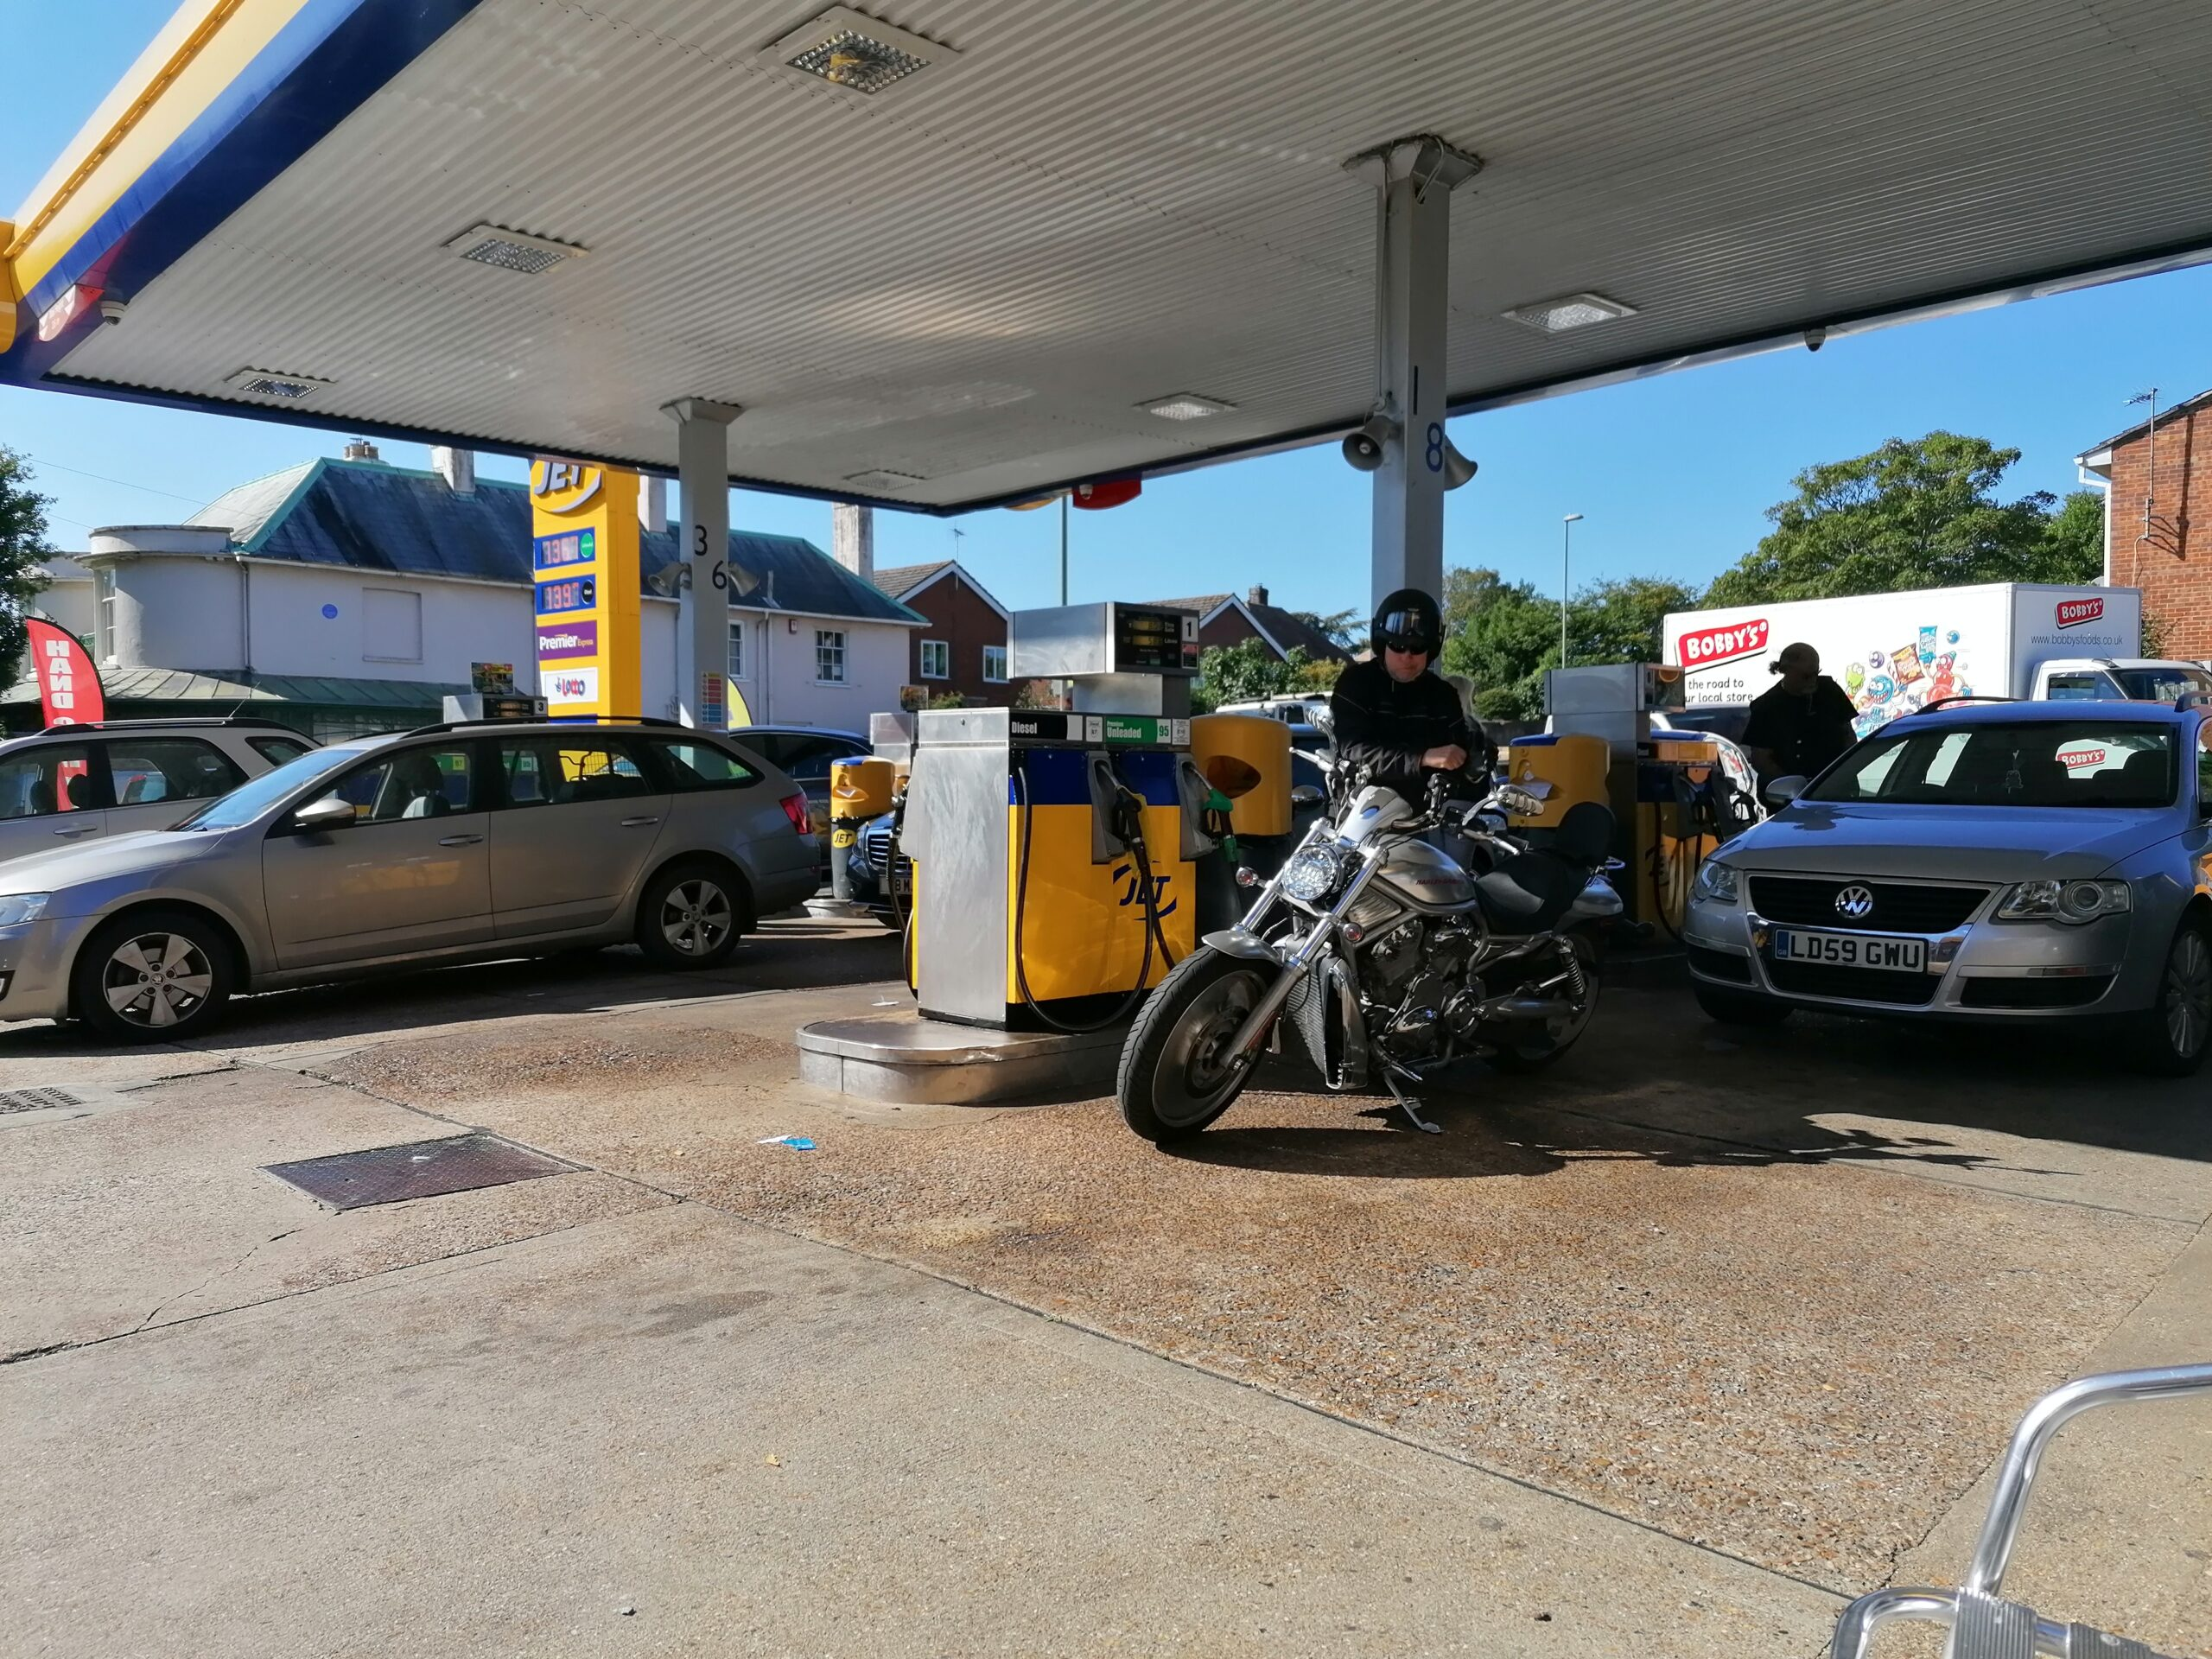 Queues at the petrol station in Emsworth